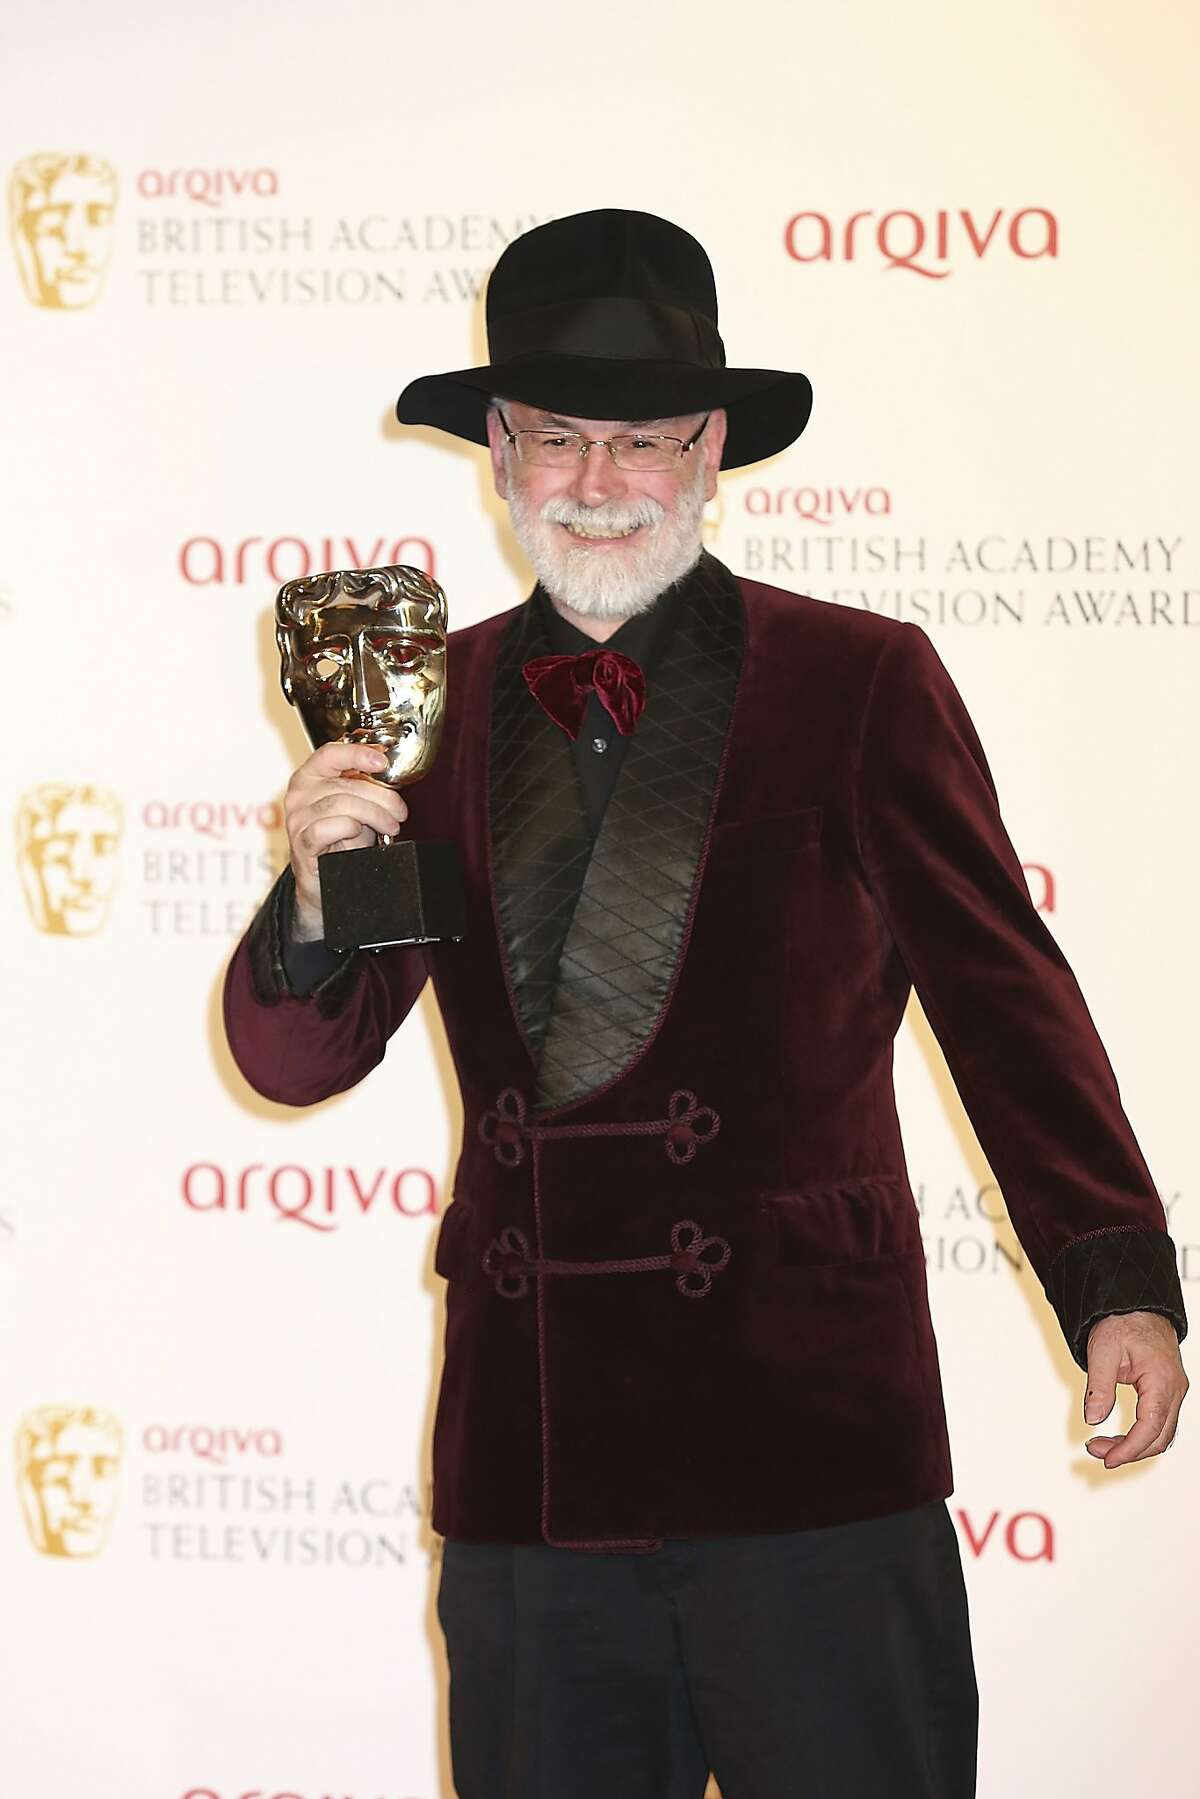 FILE PHOTO: Author Terry Pratchett has died from Alzheimers disease aged 66 LONDON, ENGLAND - MAY 27: Winner of Best Single Documentary Terry Pratchett poses in front of the winners boards at the Arqiva British Academy Television Awards 2012 held at Royal Festival Hall on May 27, 2012 in London, England. (Photo by Tim Whitby/Getty Images)